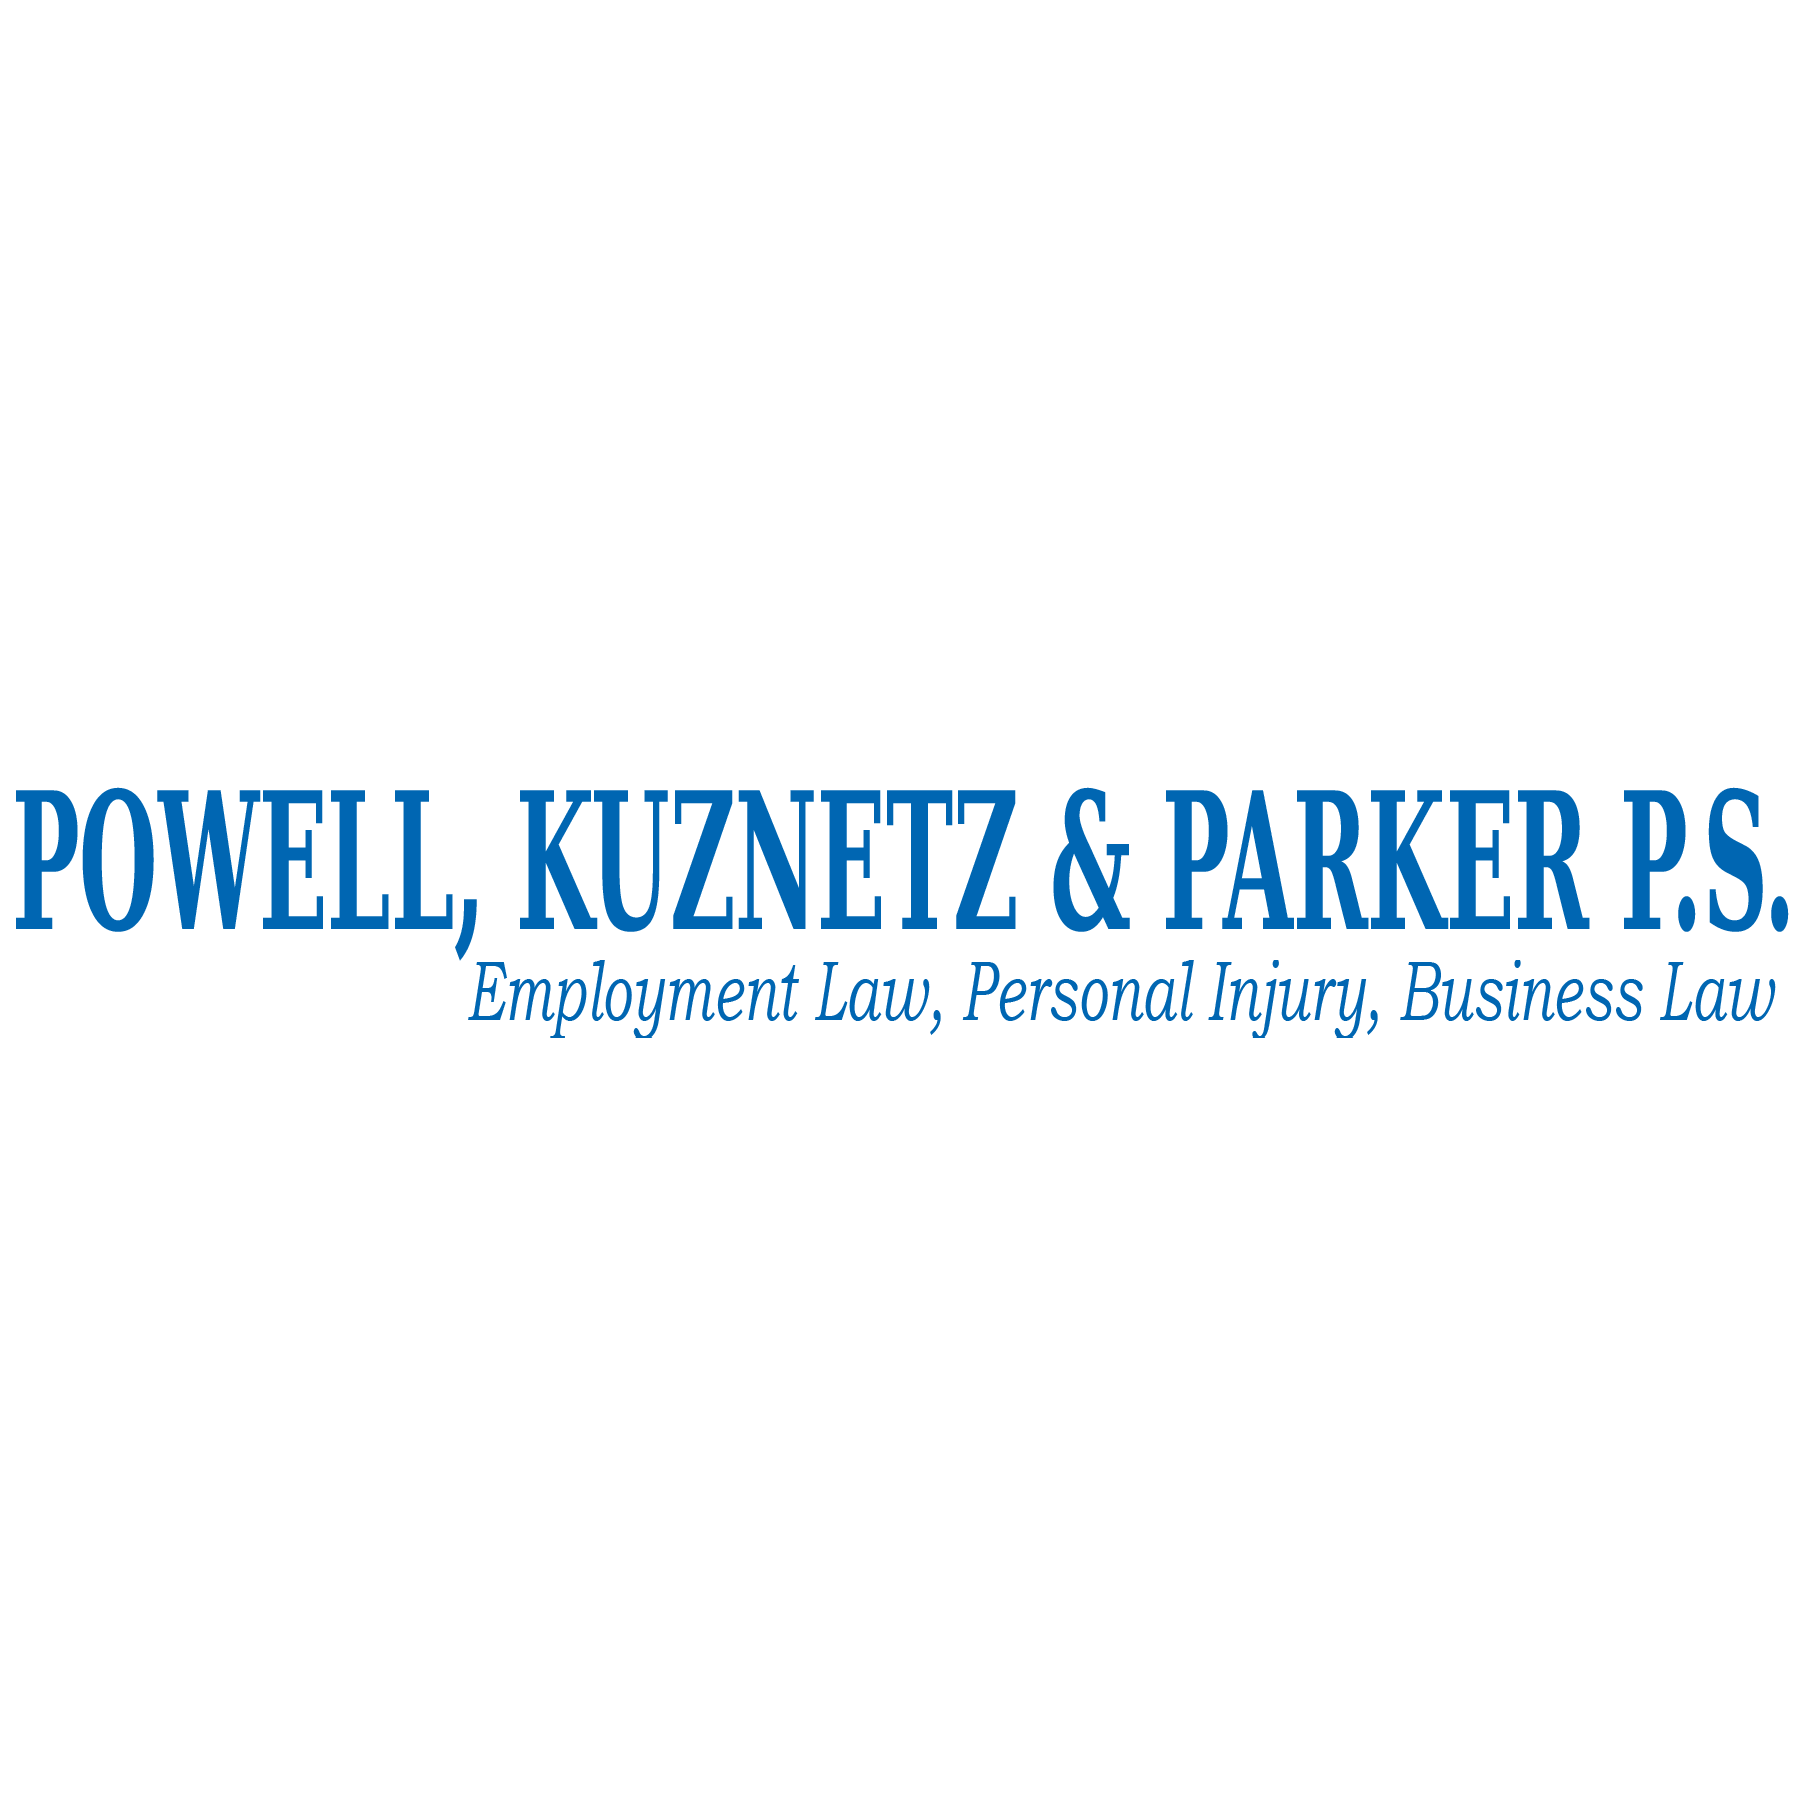 Powell, Kuznetz & Parker P.S. - Spokane, WA - Attorneys